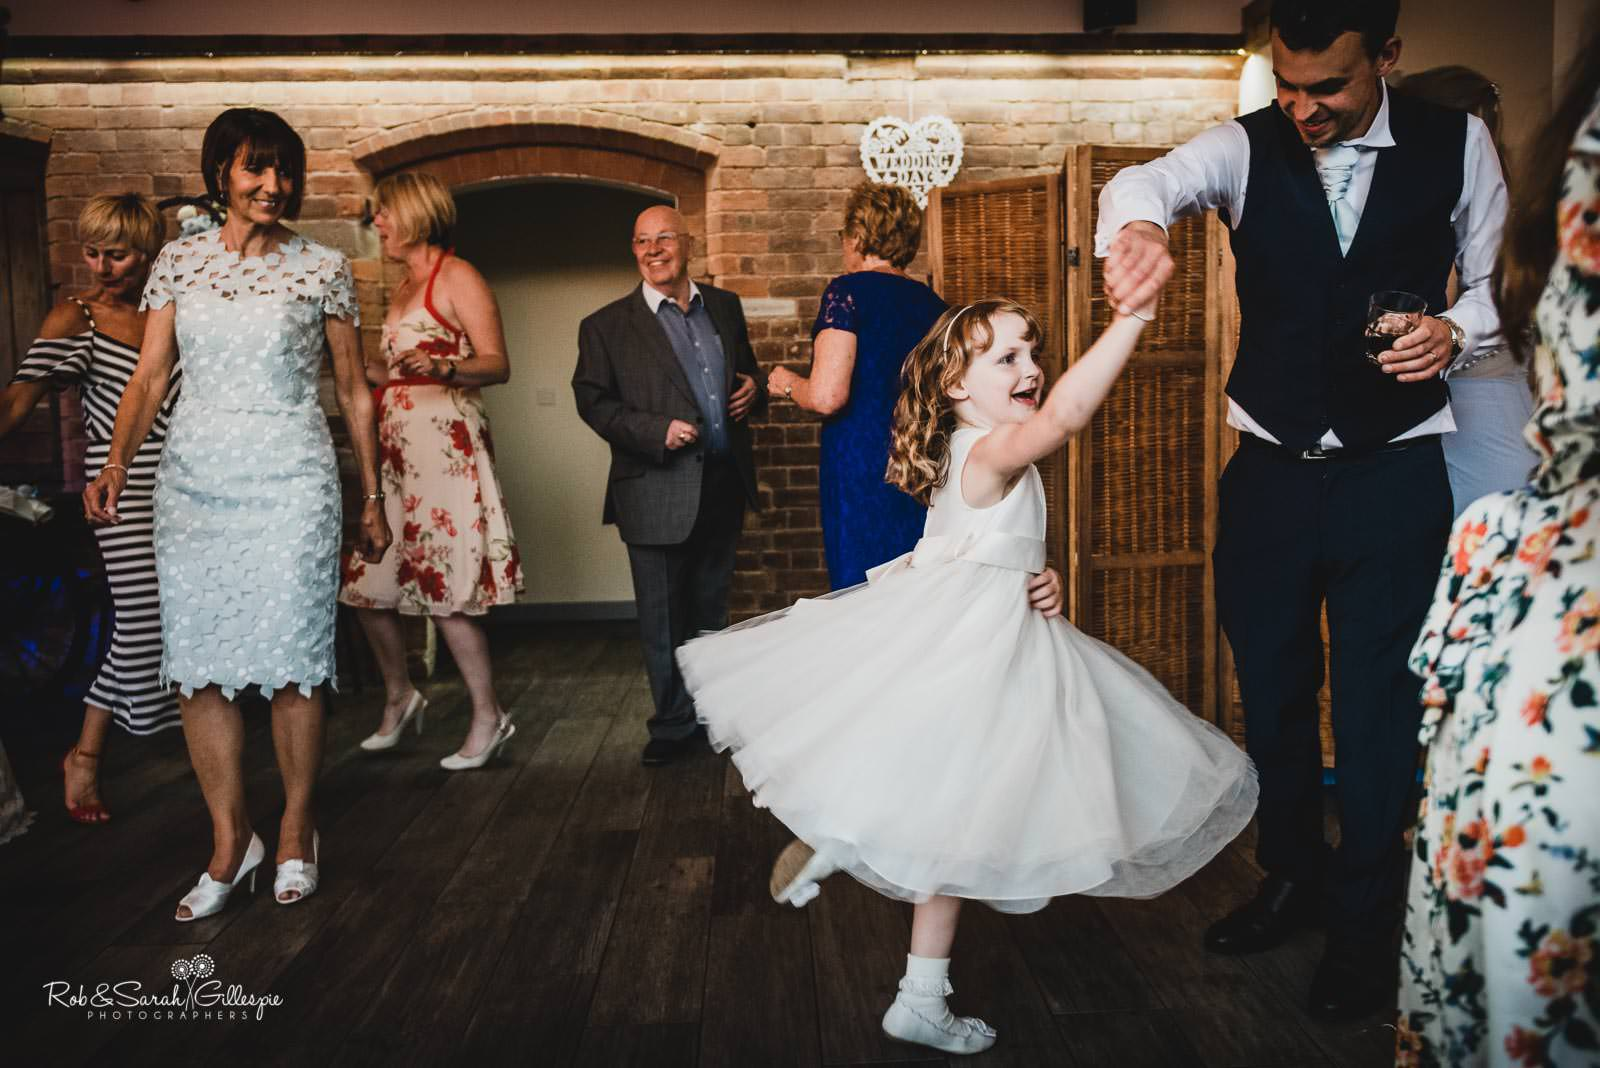 Wedding guests dancing at Swallows Nest Barn